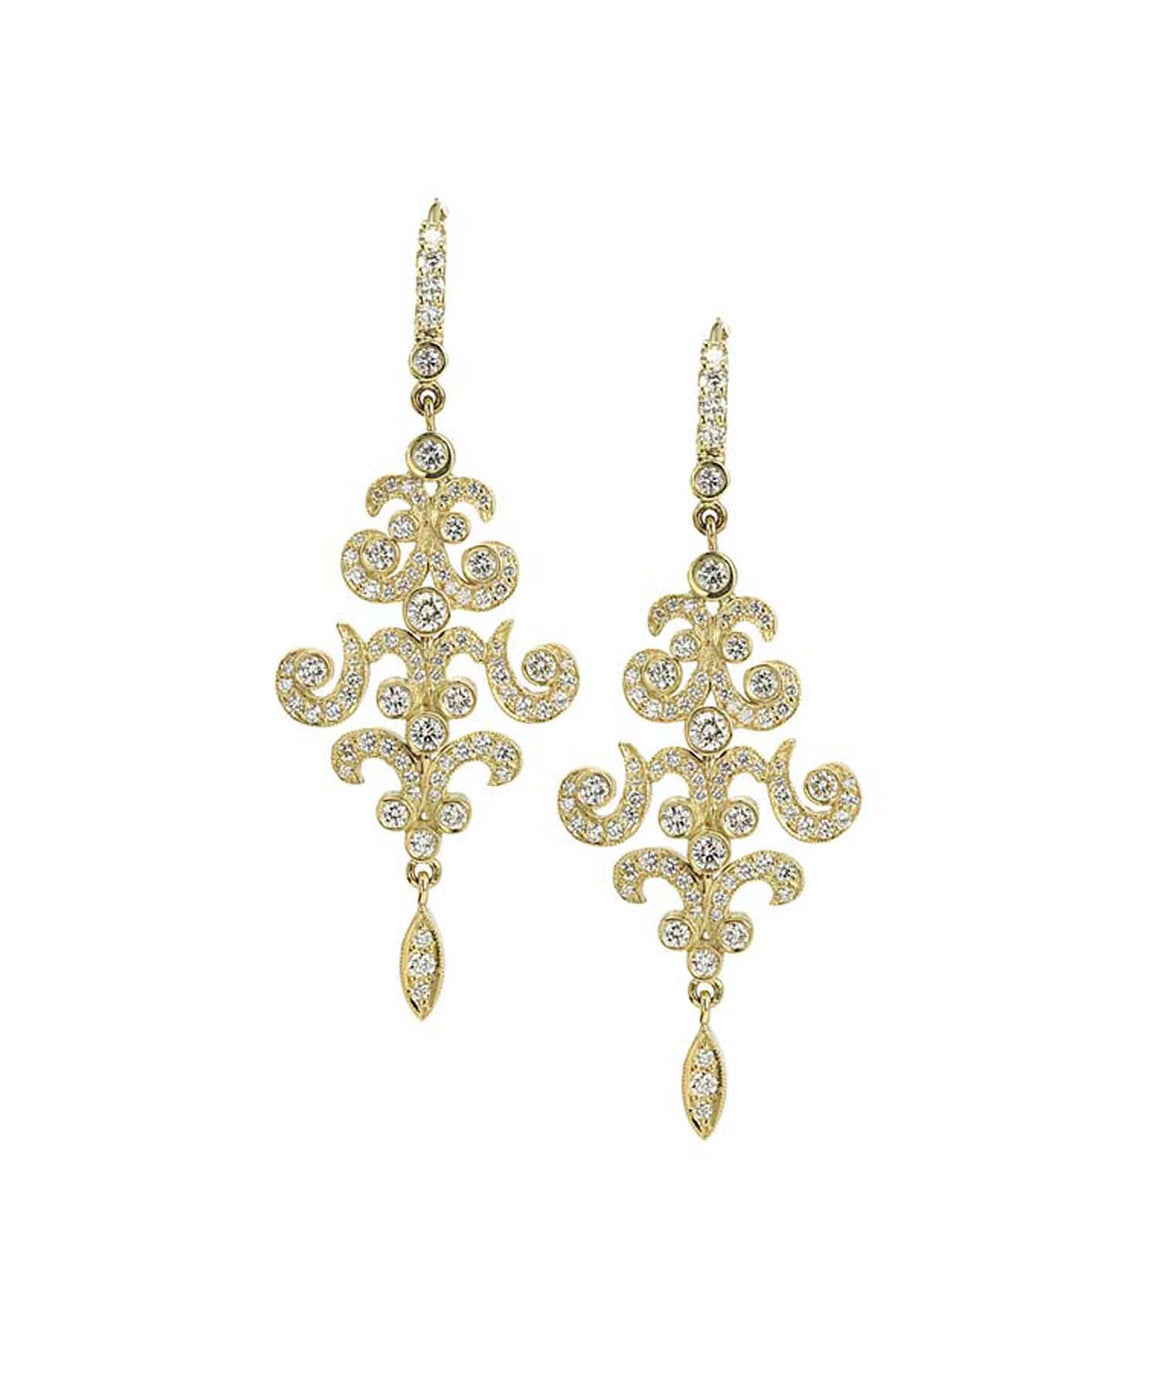 Open scroll diamond earrings